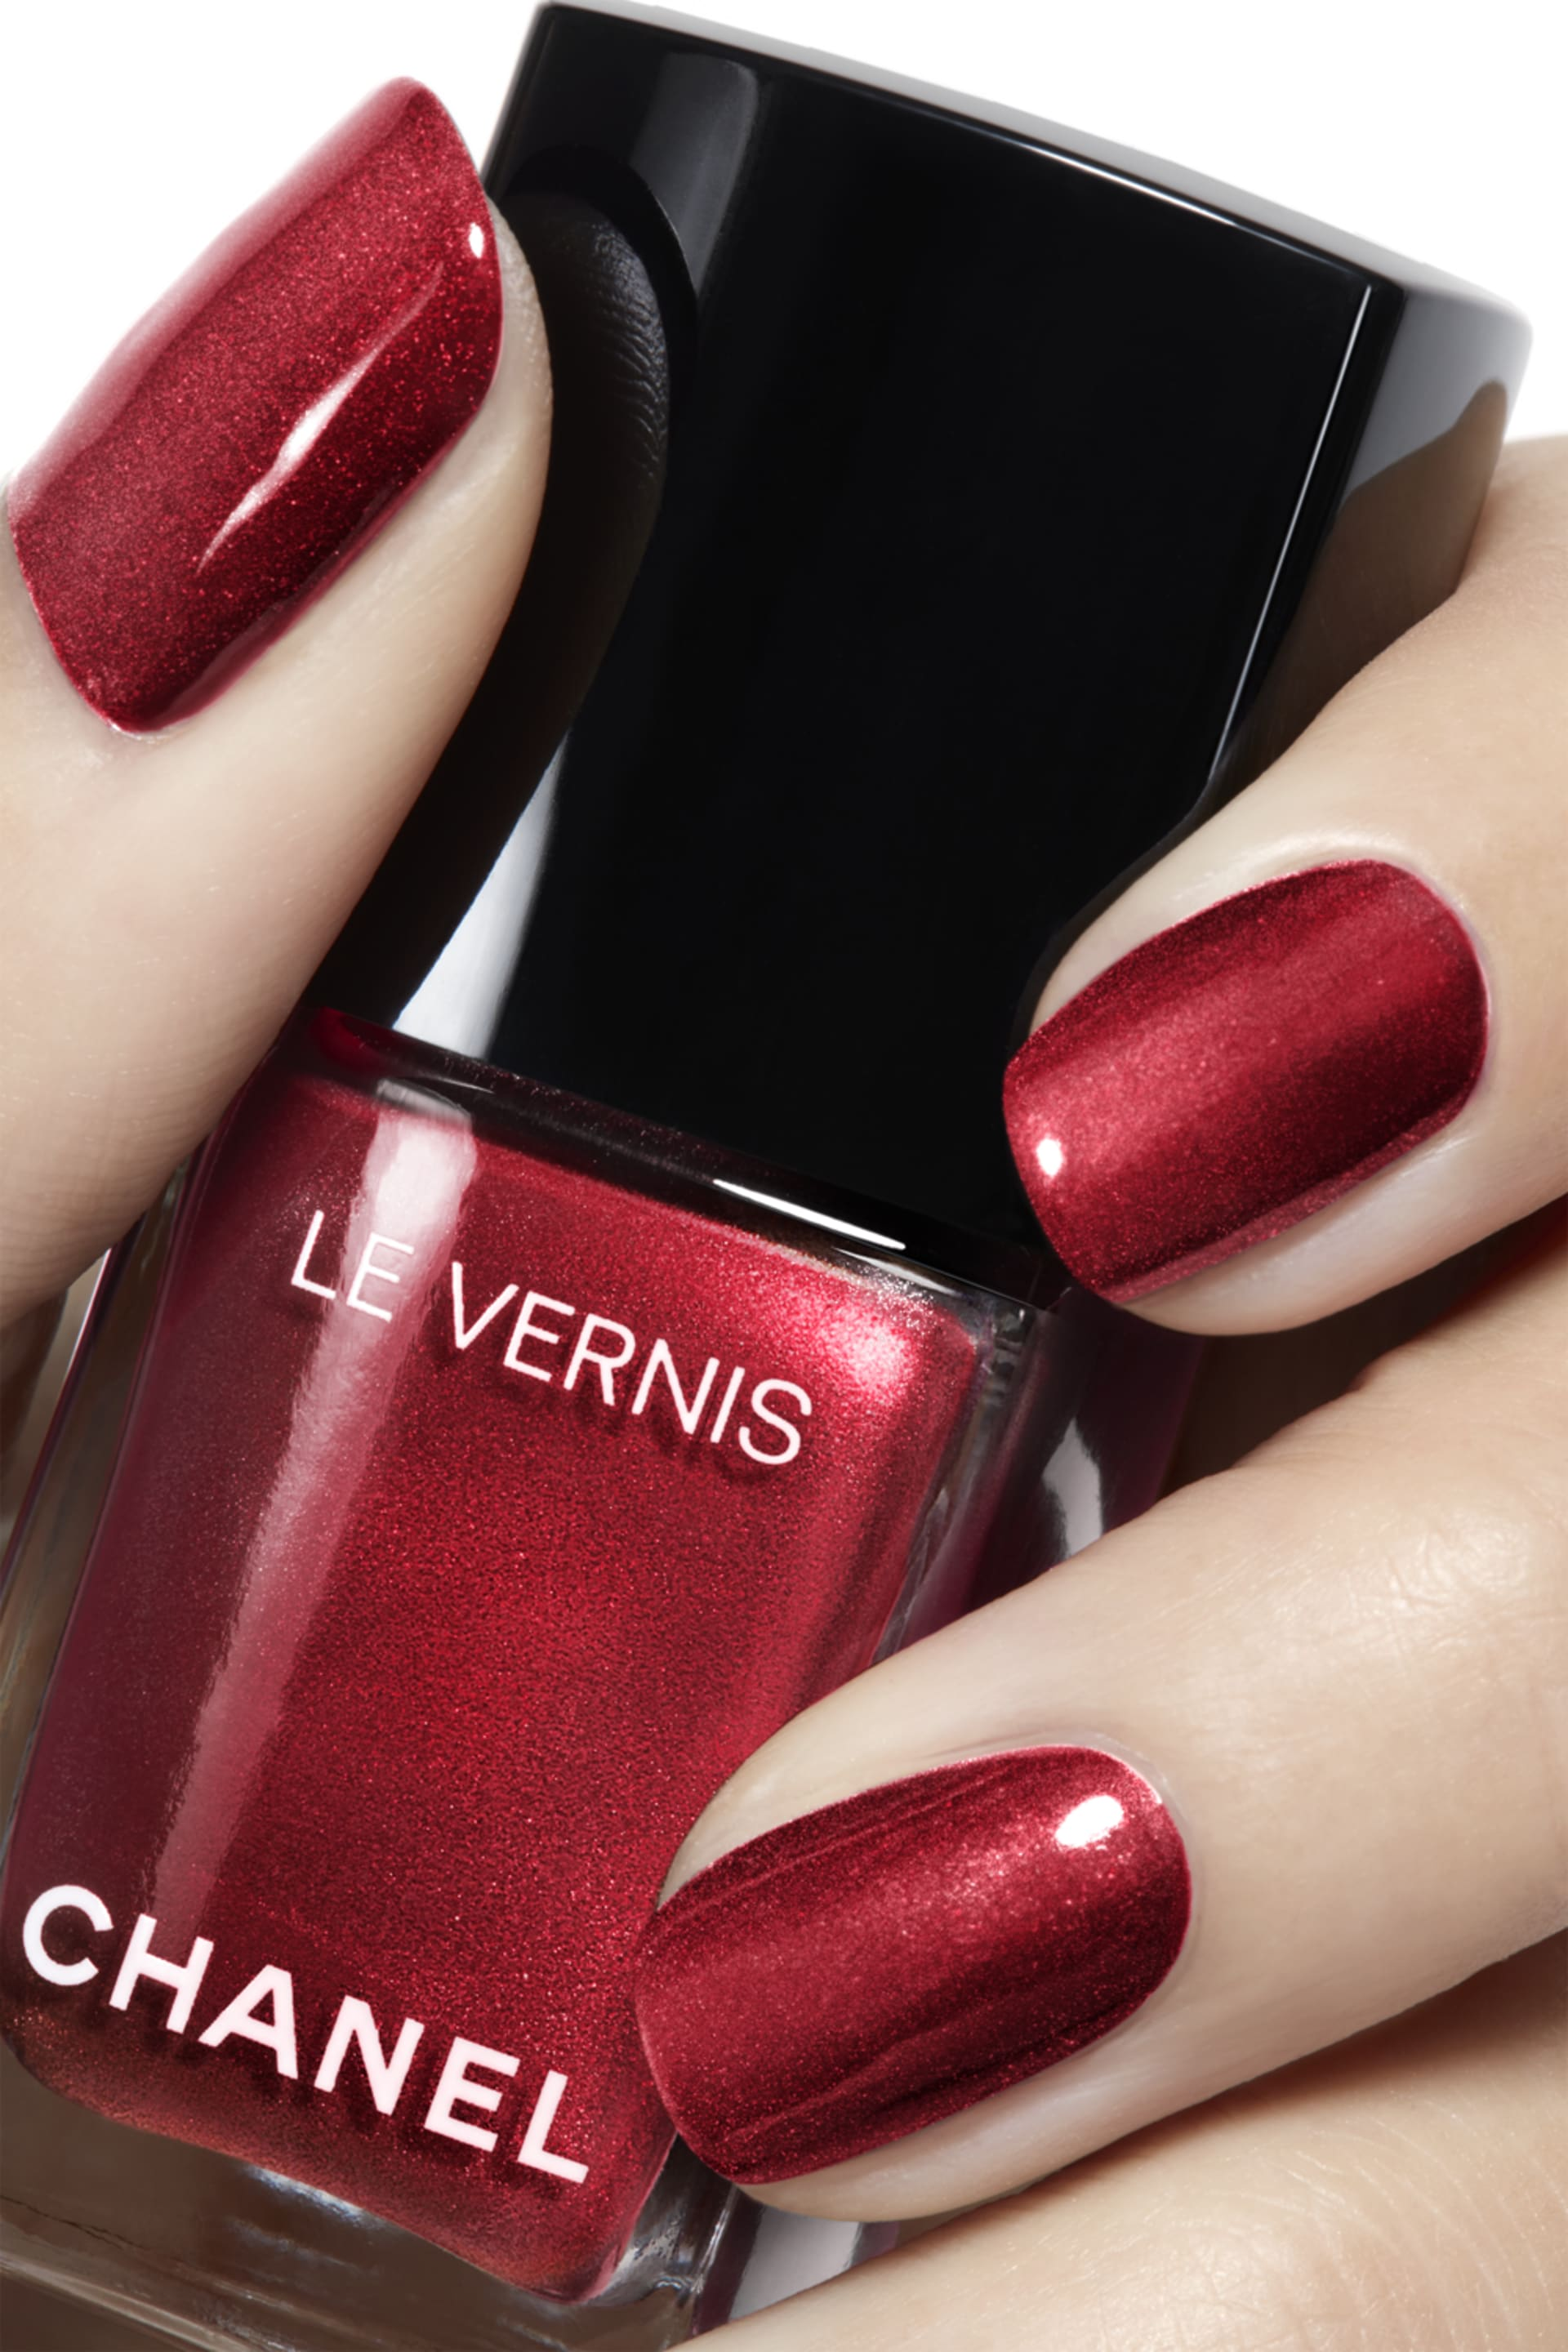 Application makeup visual 2 - LE VERNIS 731 - RADIANT RED